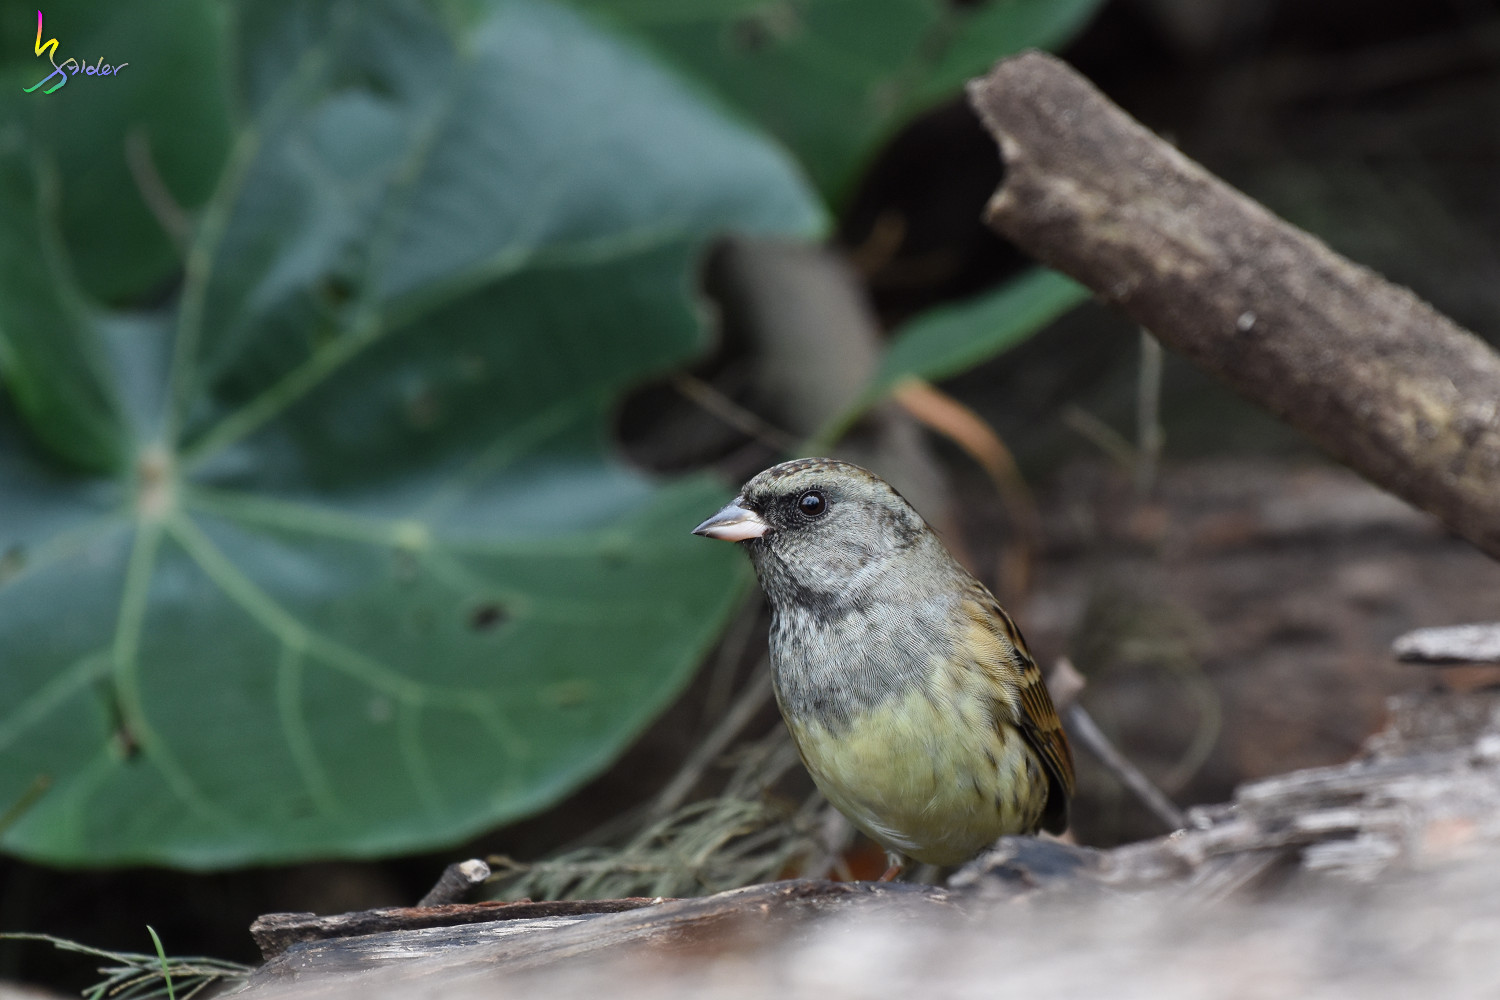 Black-faced_Bunting_7717